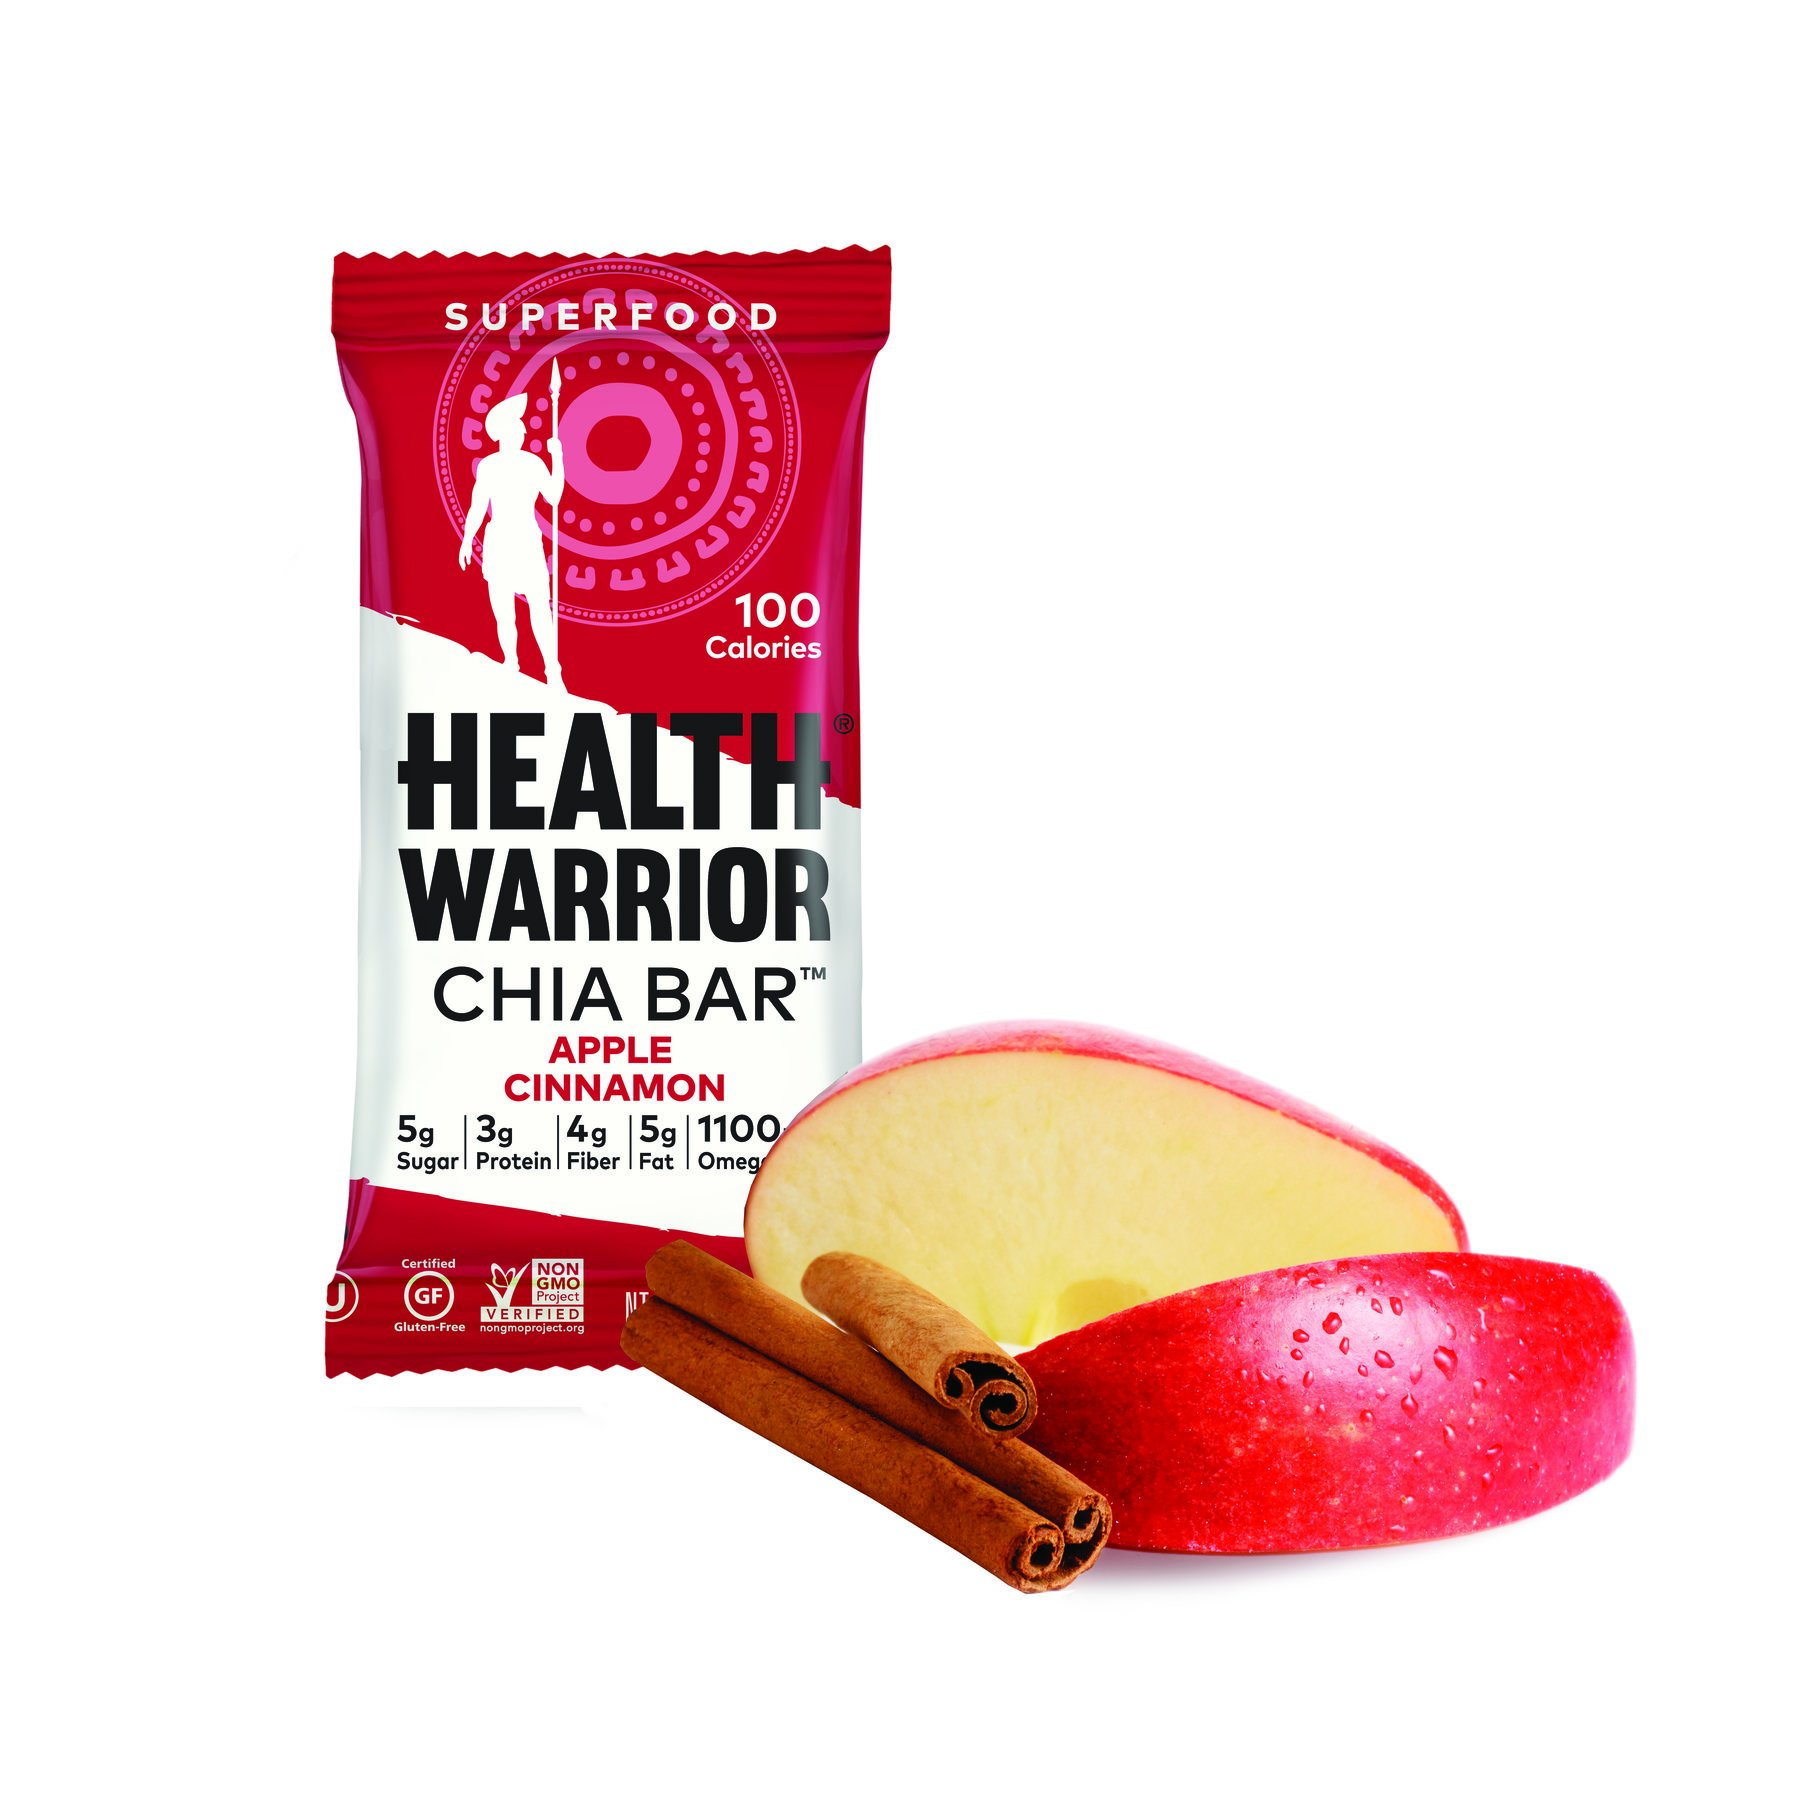 Health Warrior Apple Cinnamon Chia Bar, 0.88 oz